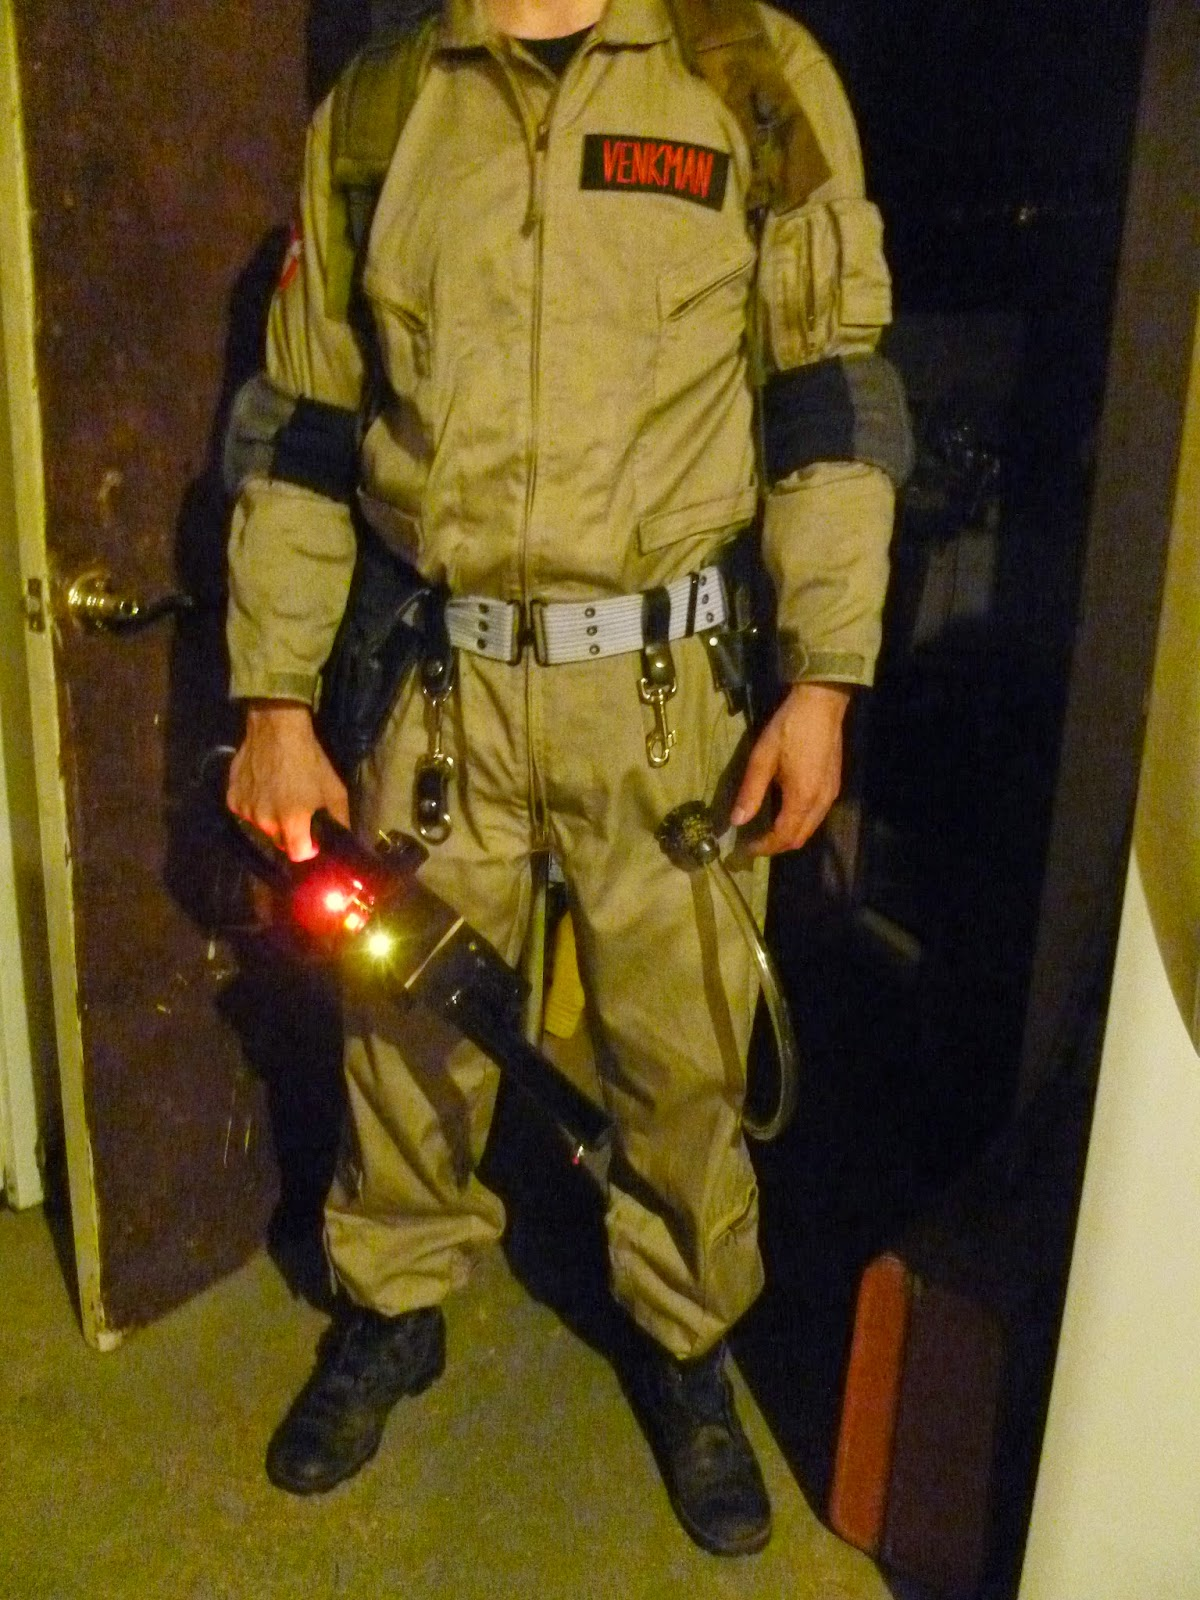 Ghostbuster uniform